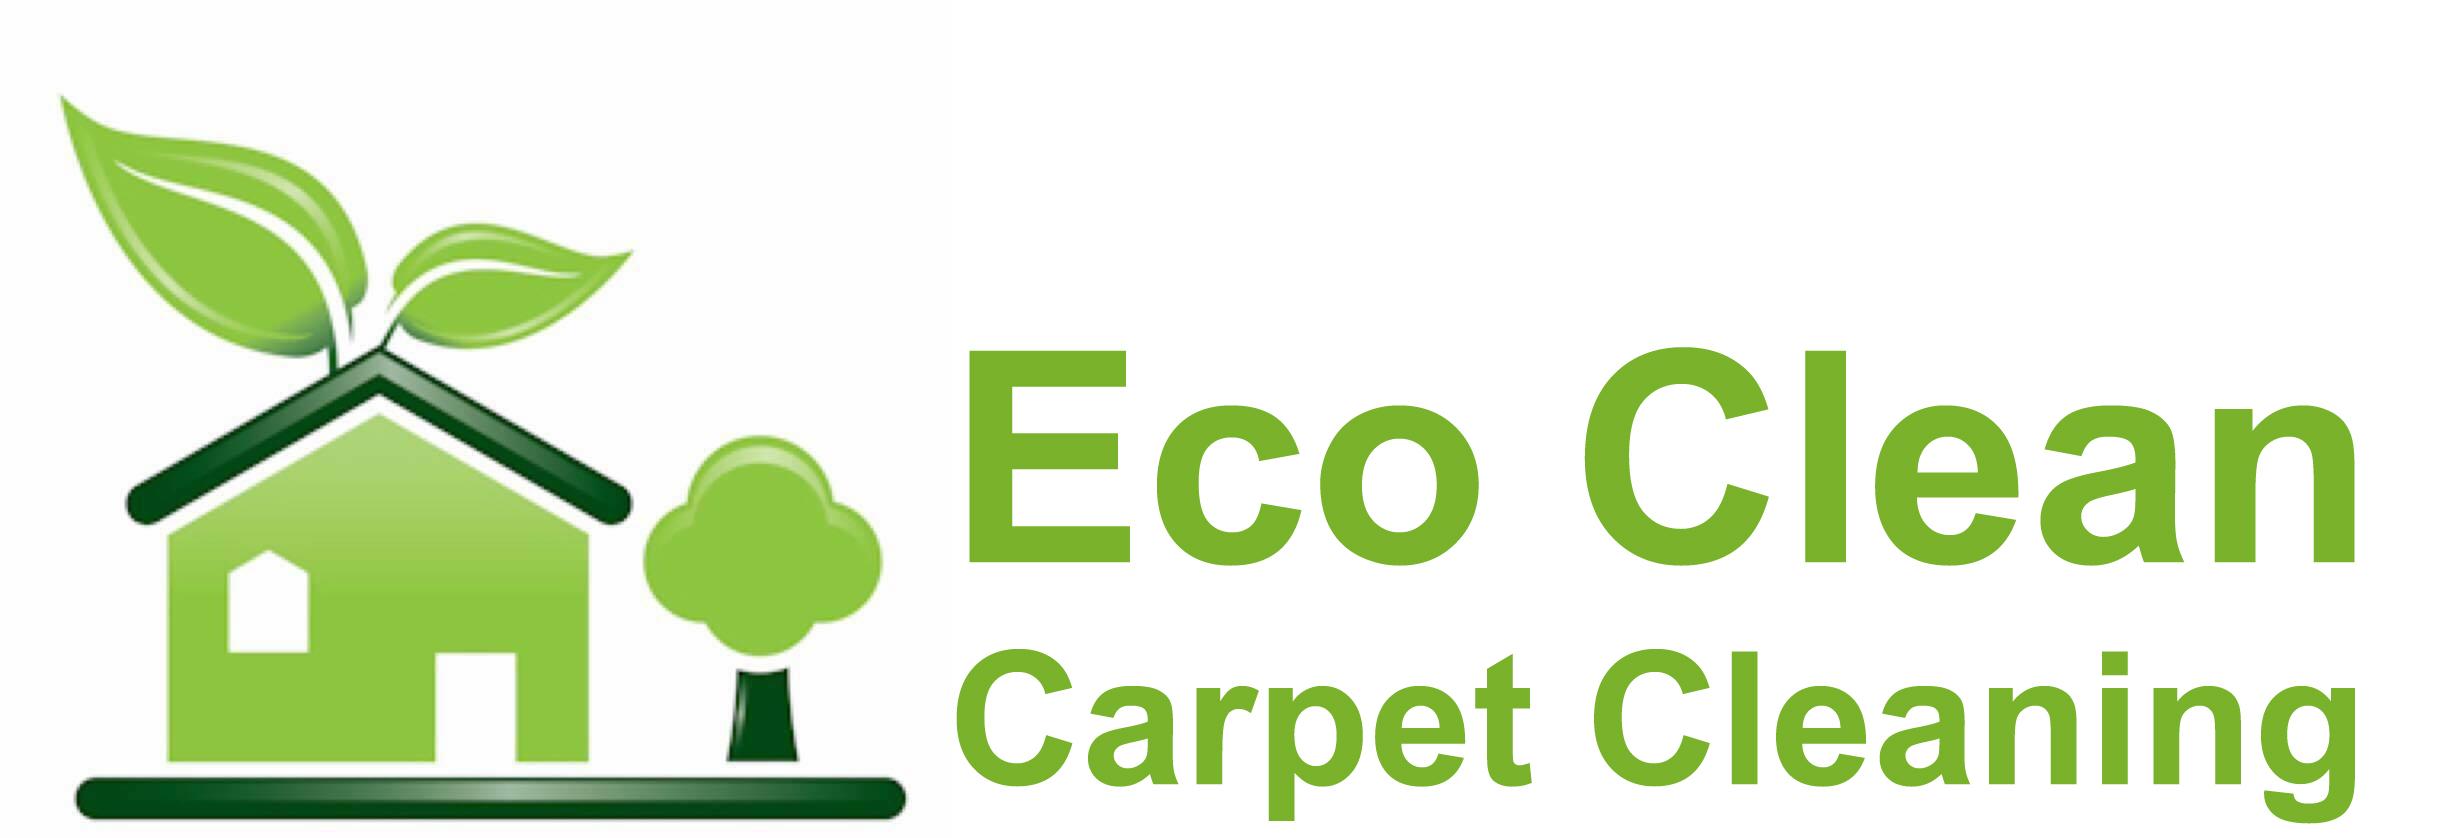 Eco Clean Carpet Cleaning Services